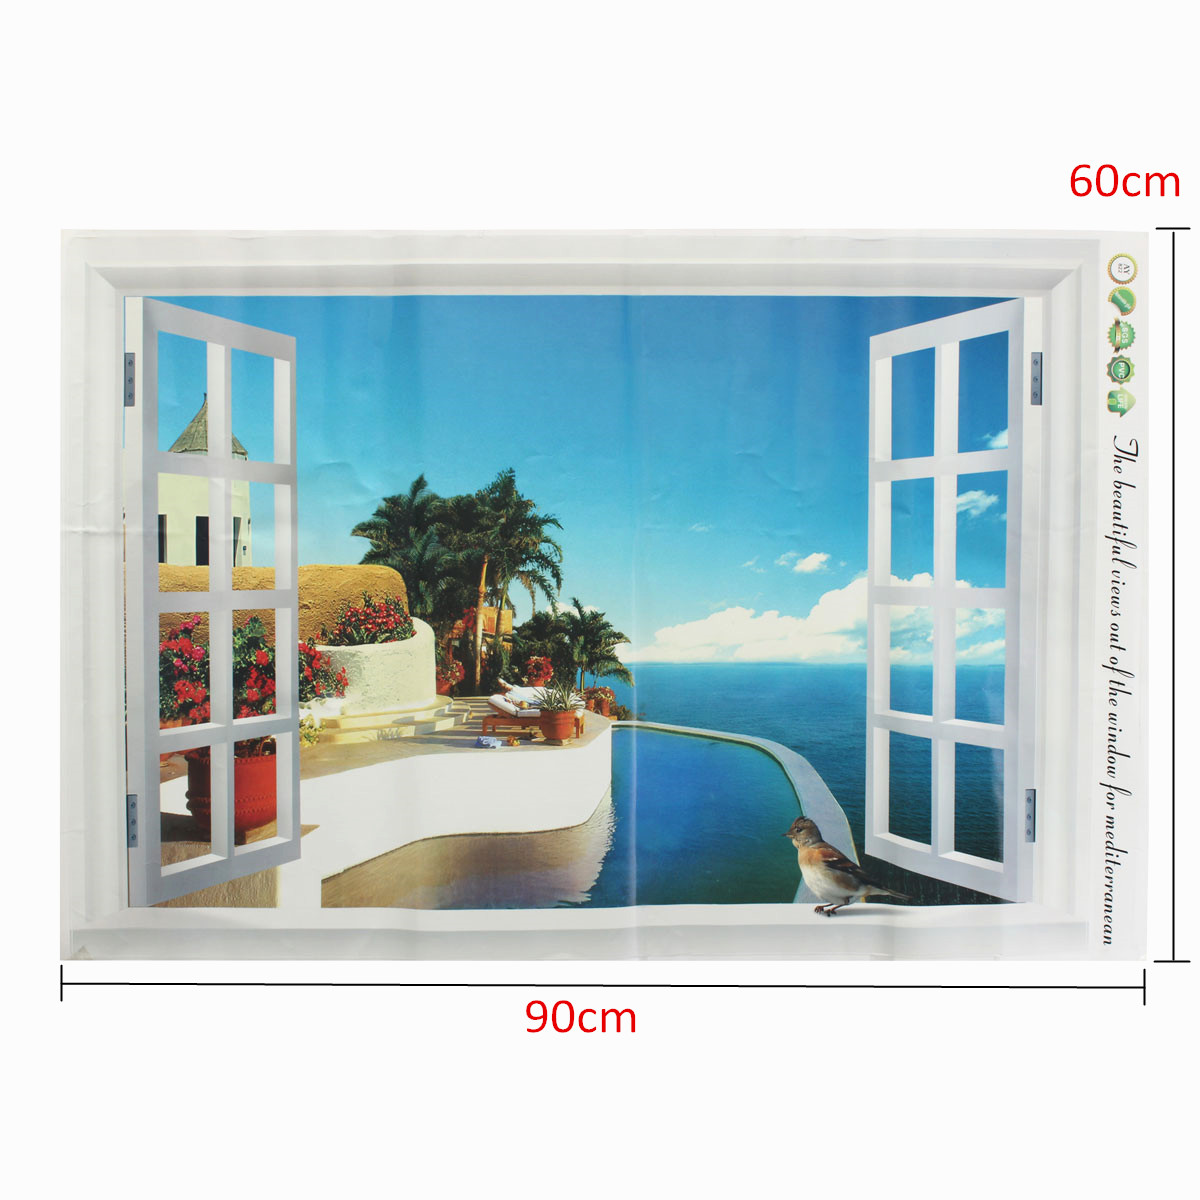 Home decor 3d window decal wall sticker exotic beach view for Home decor 3d stickers